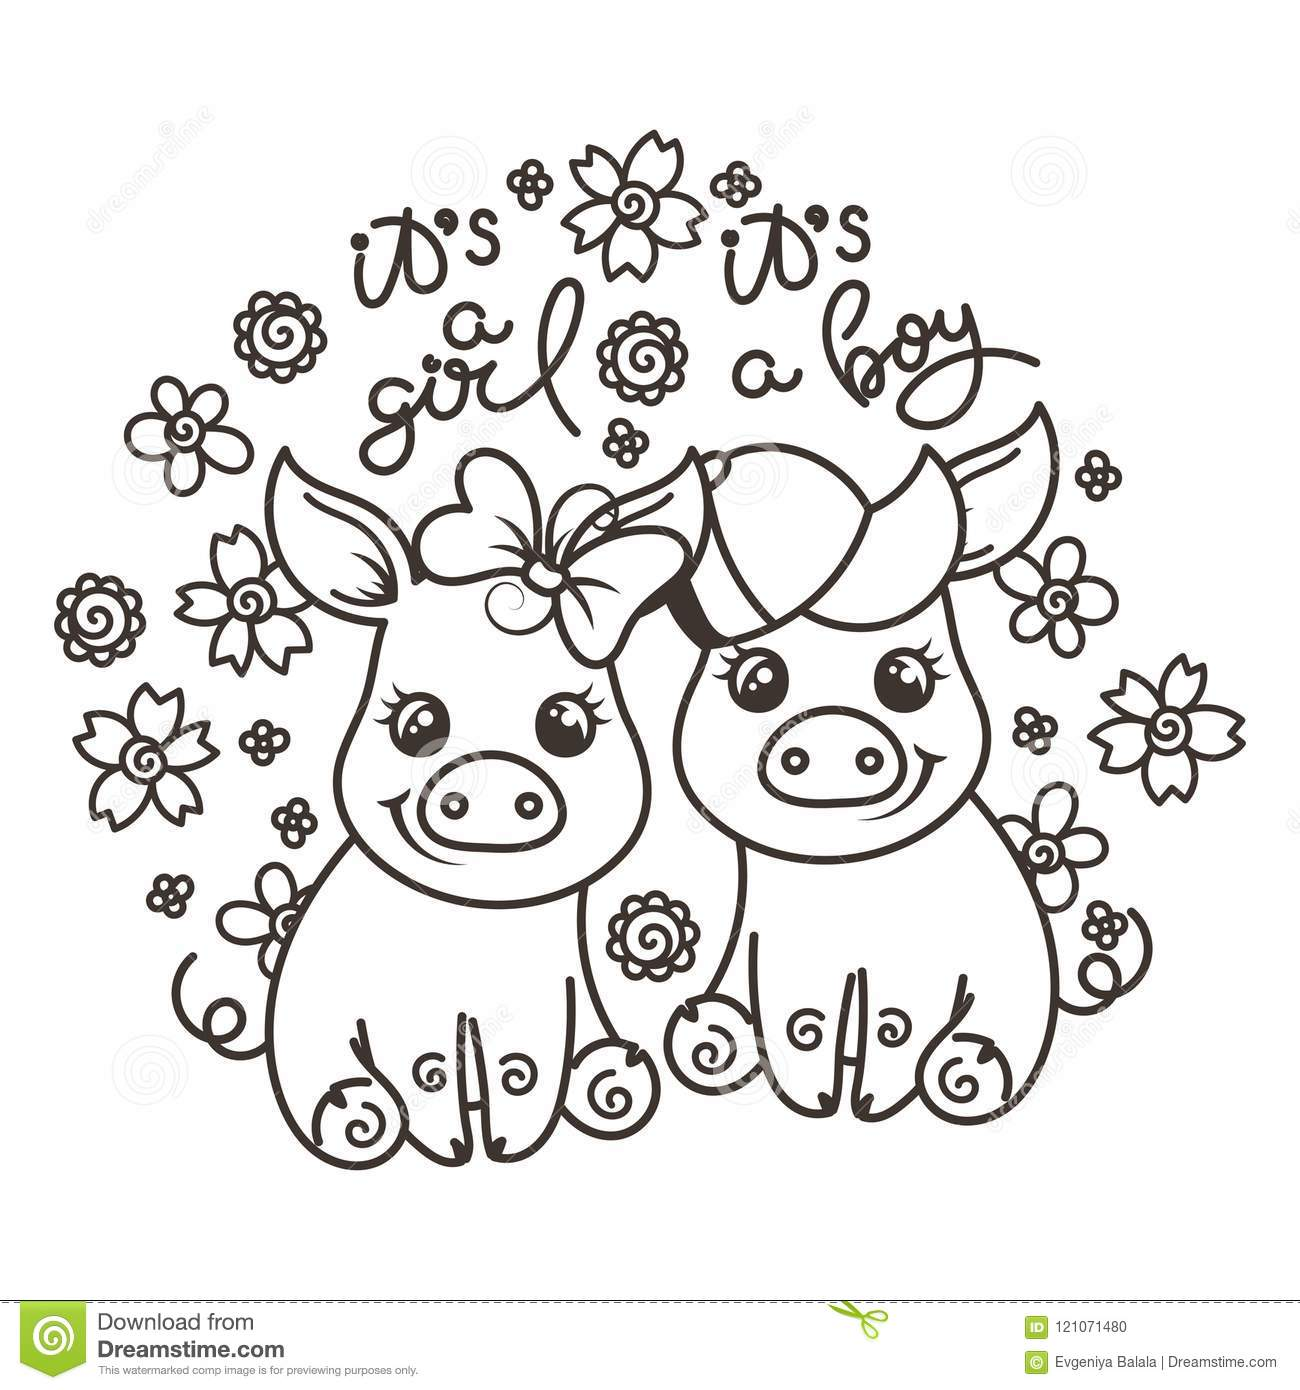 Cute Cartoon Baby Pigs In Love Stock Vector - Illustration of ...